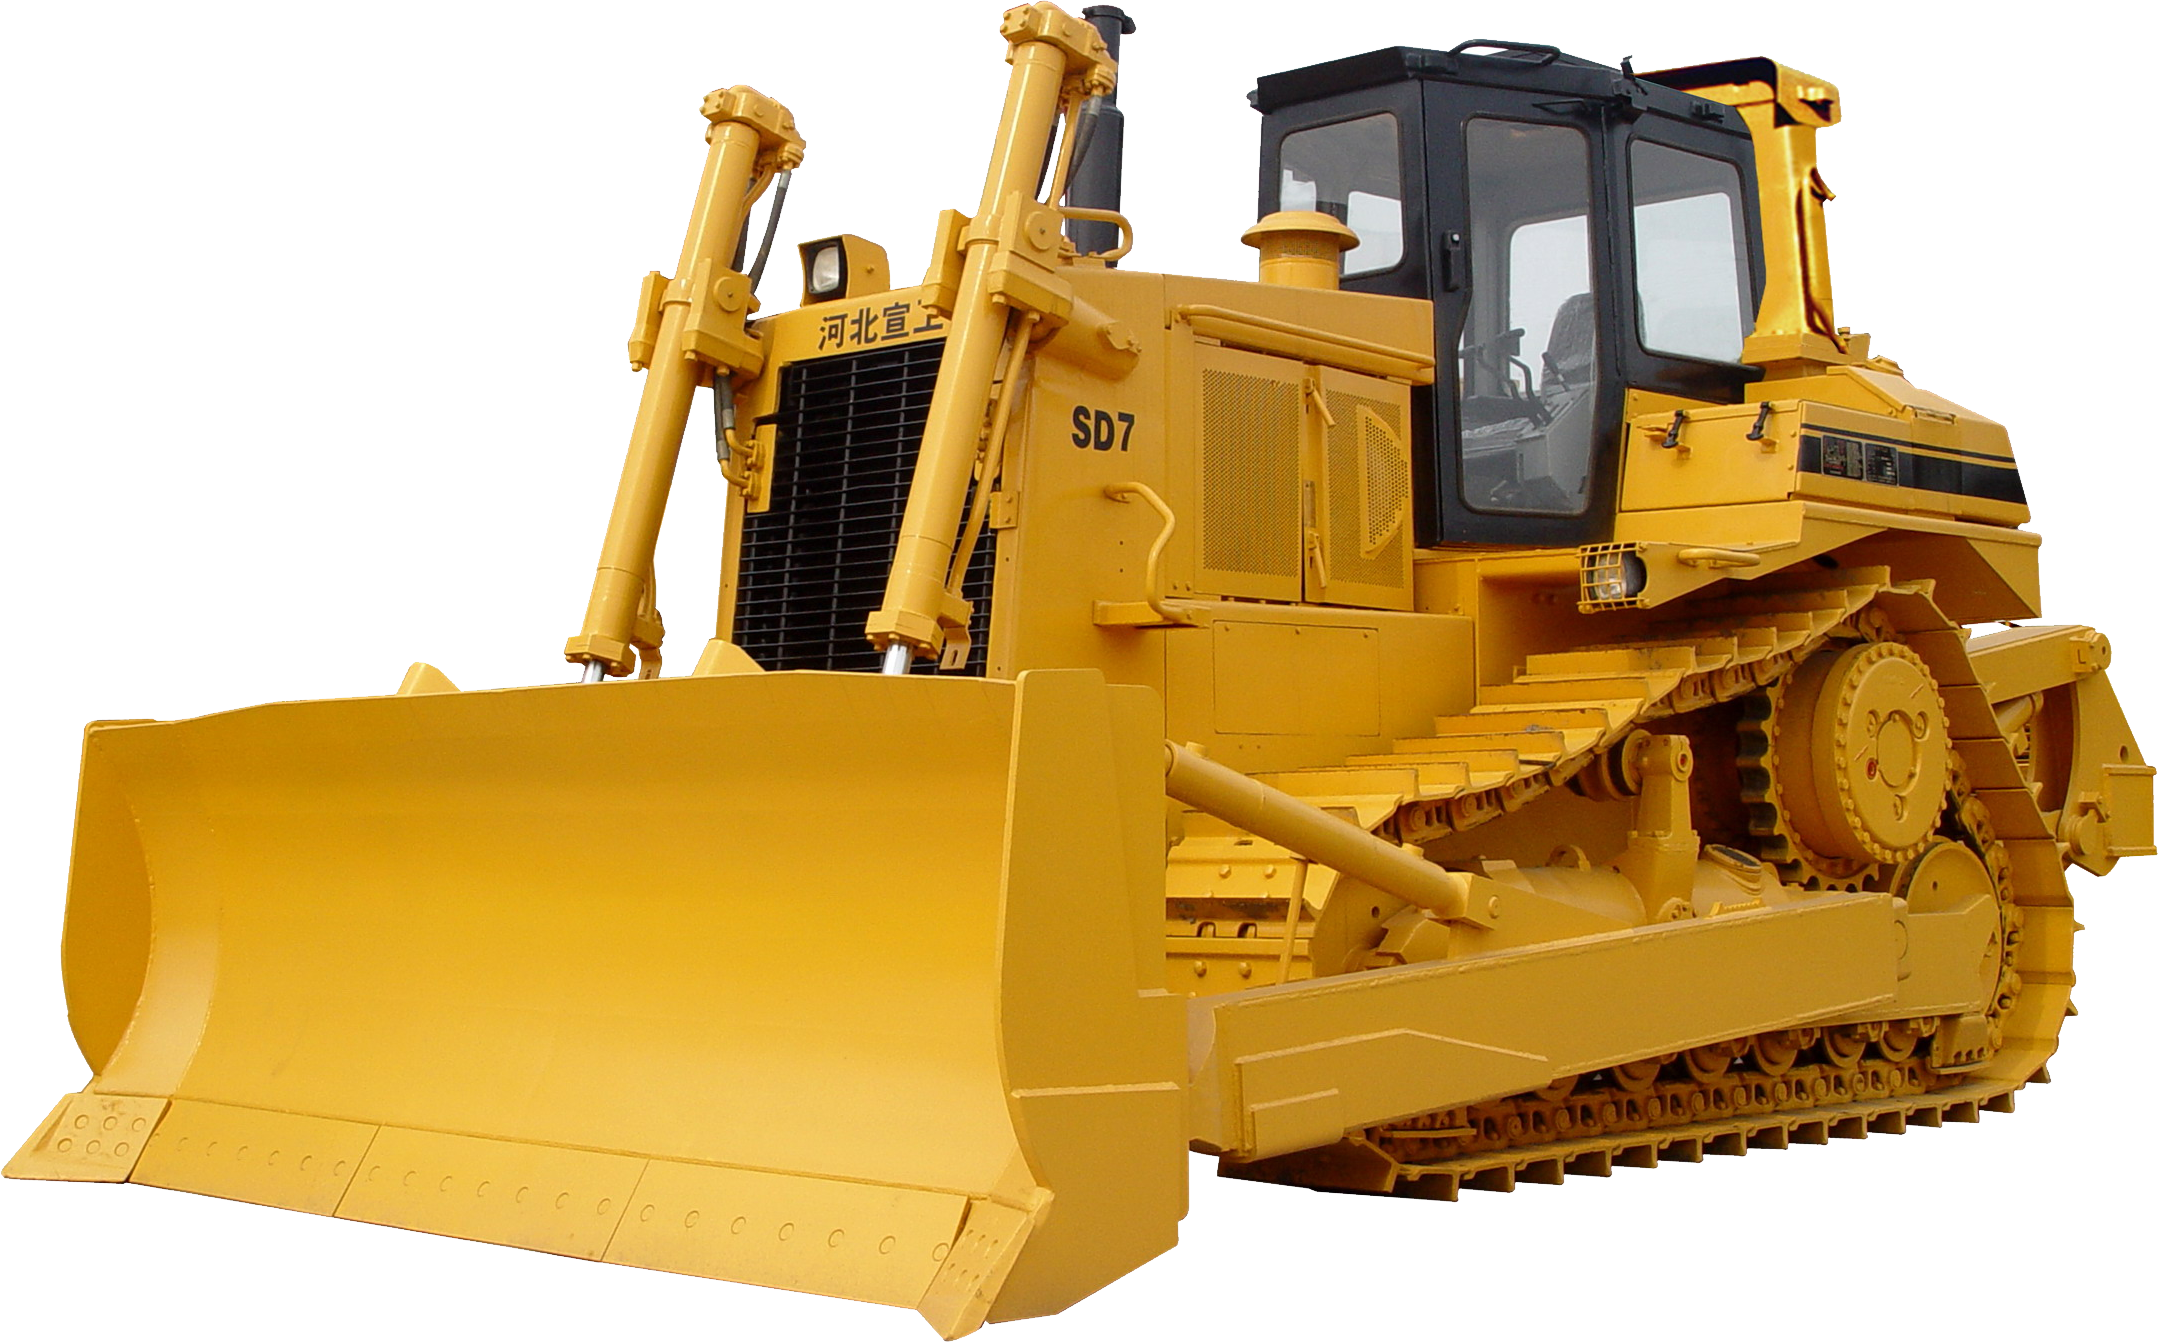 png transparent Png images free download. Bulldozer clipart tractor caterpillar